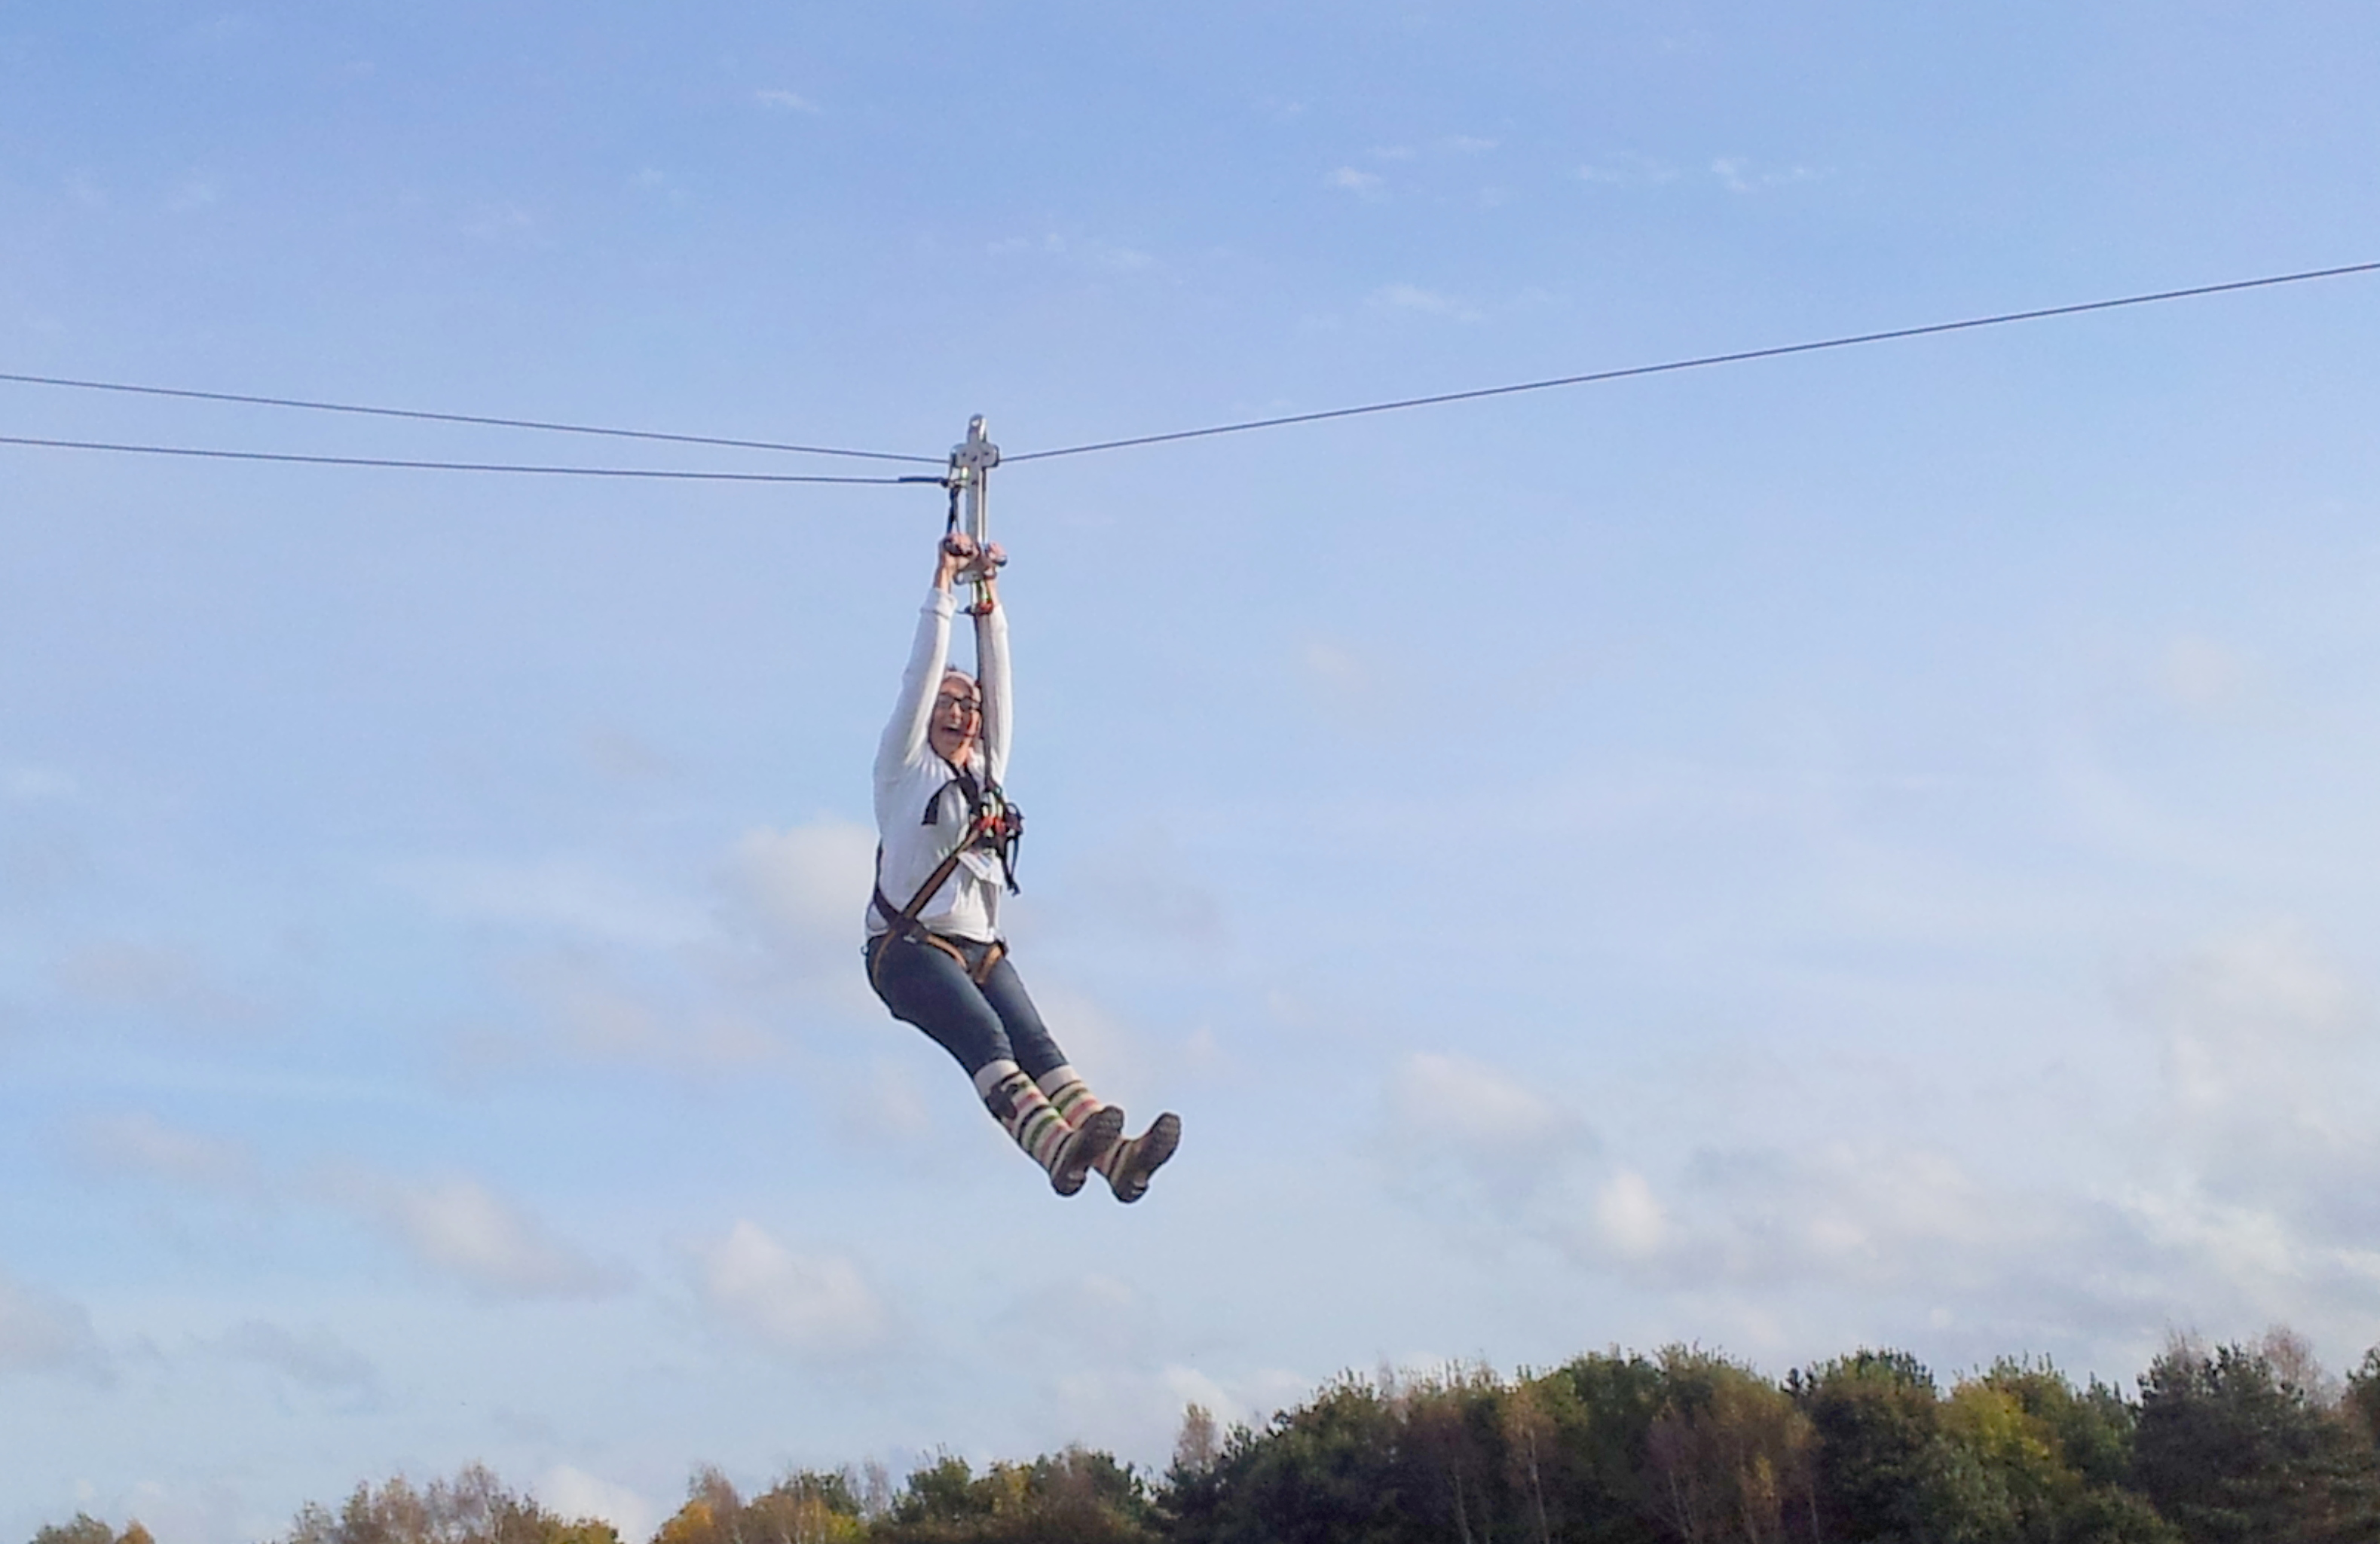 Pal Hire Images Showman Georgia Zip Wire | Free Images at Clker.com ...